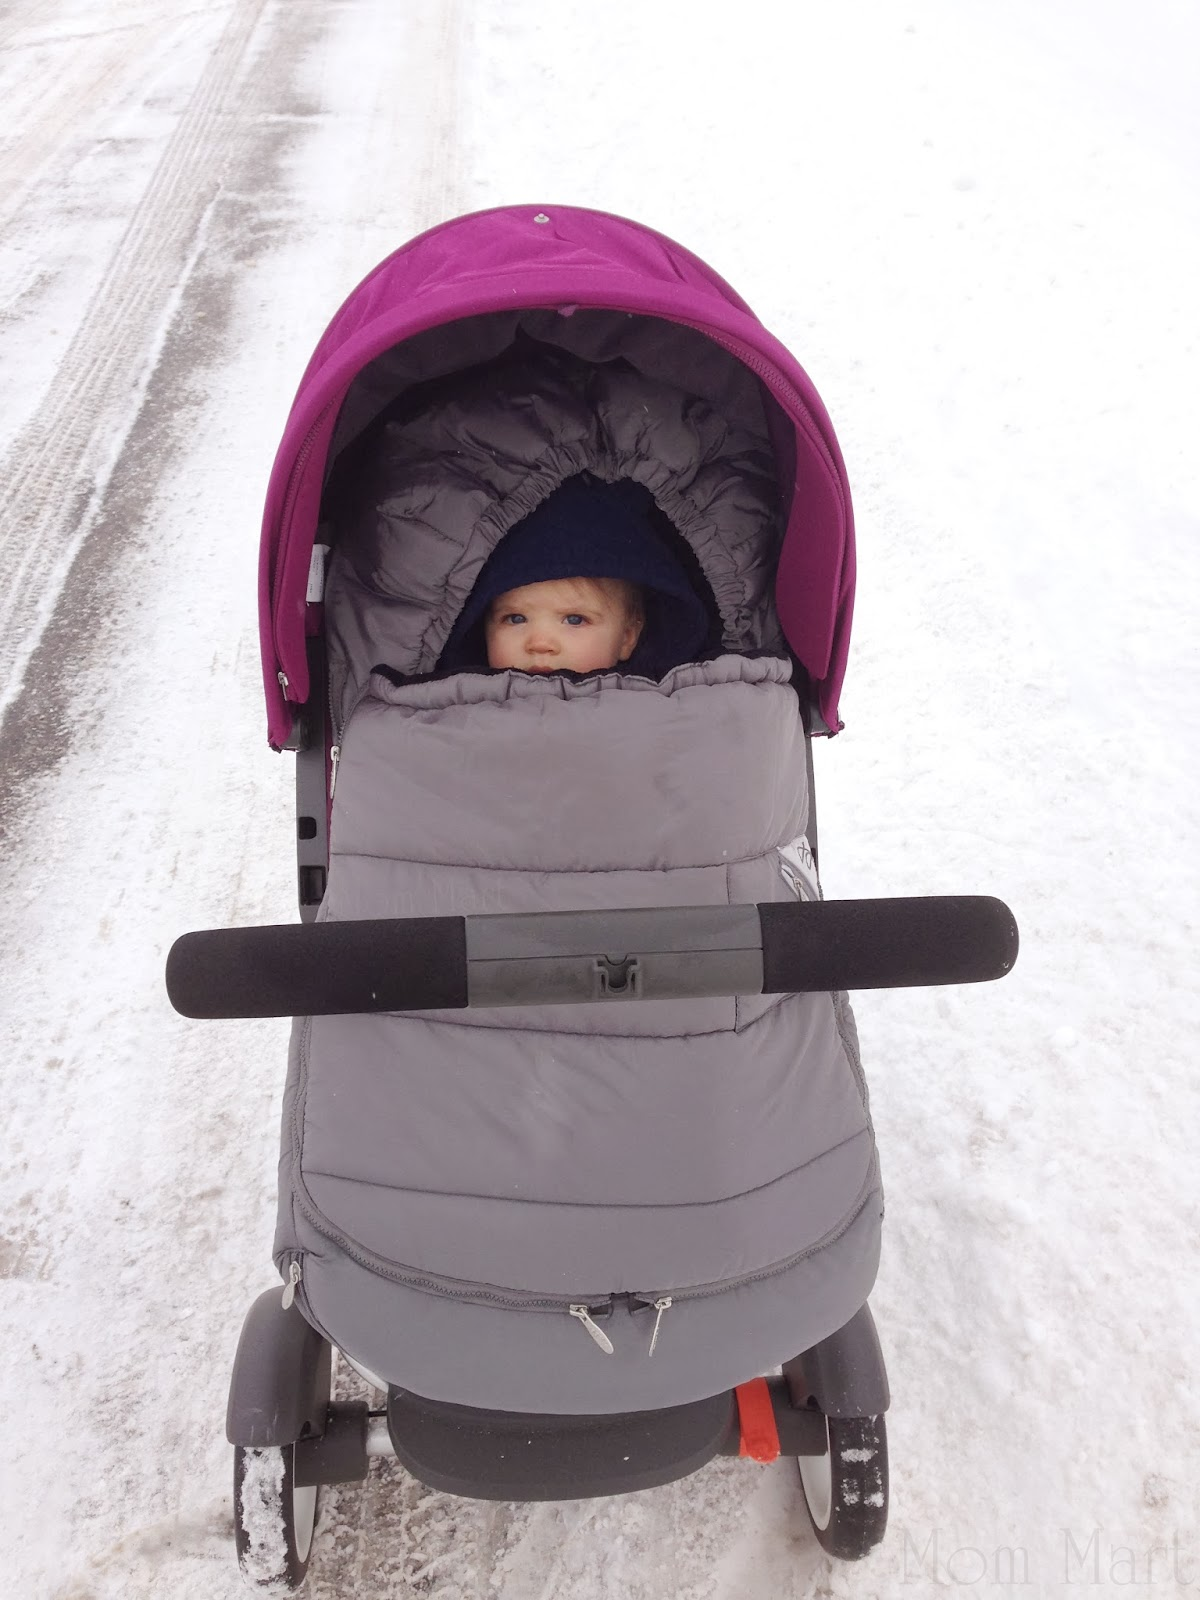 Winter Wonderland #Activities #Snow #PolarVortex #Stokke #StokkeBaby #Crusi #JJCole #PolarBundleMe